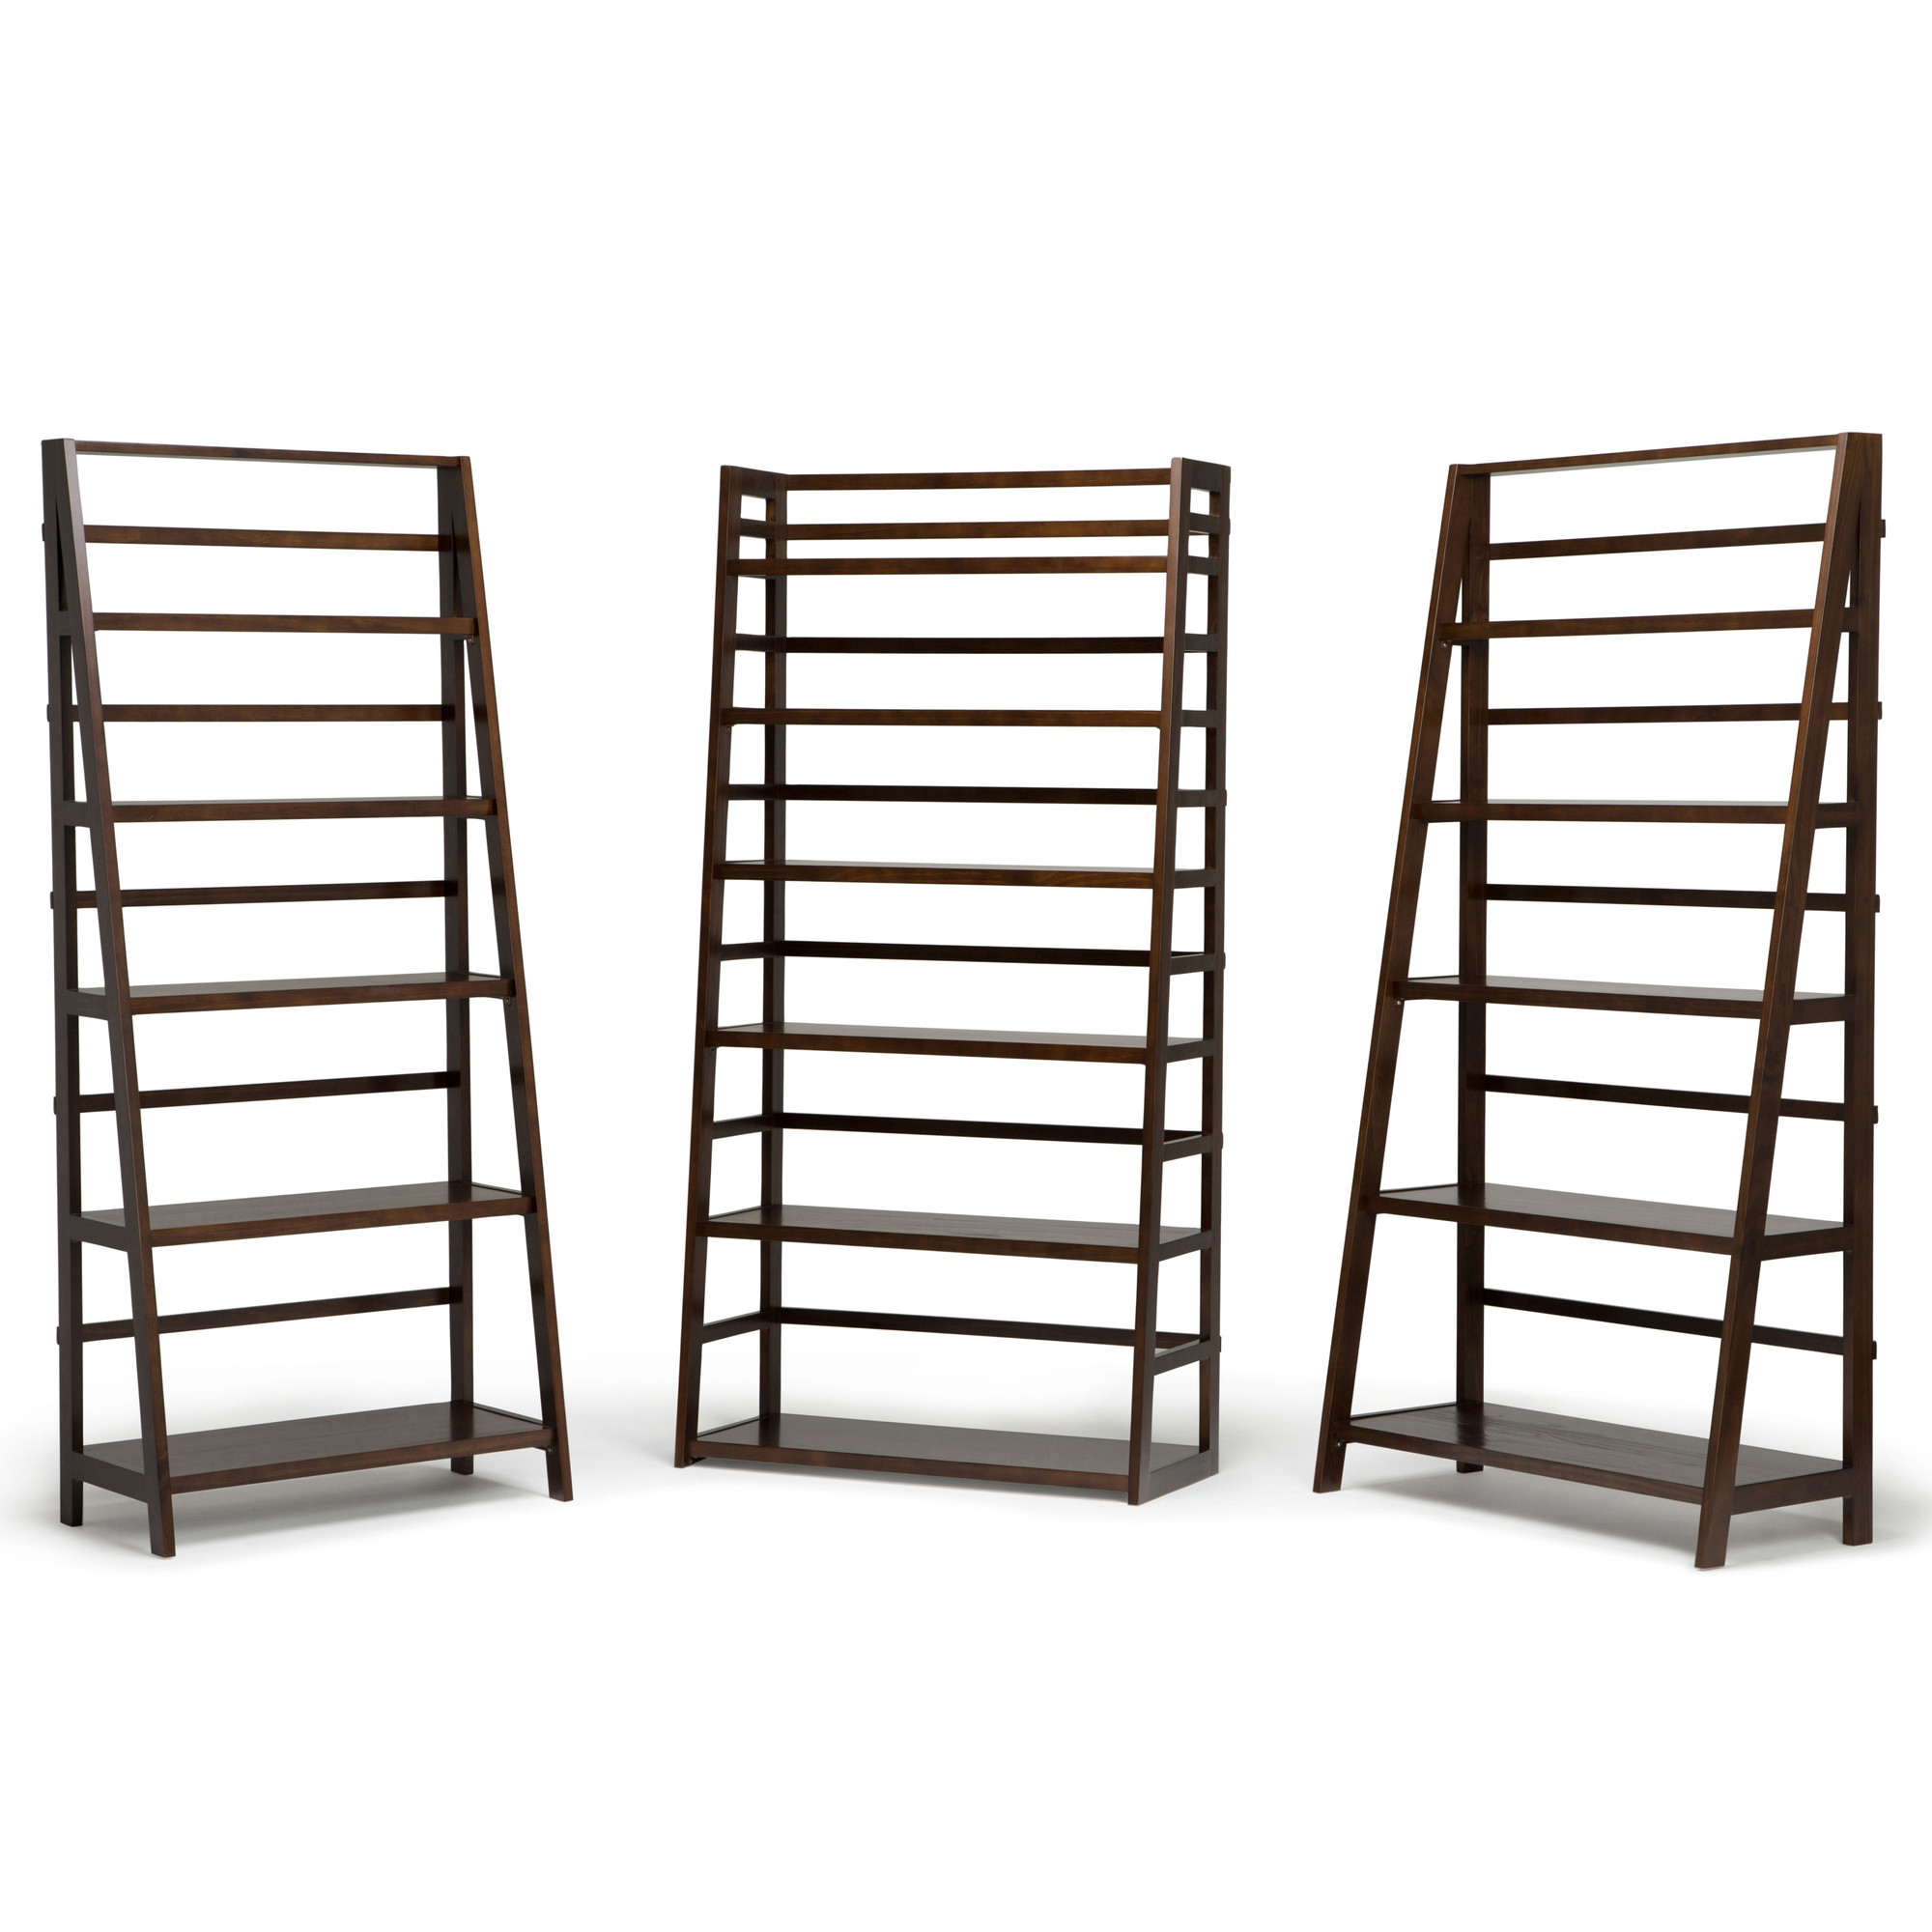 Mayna Ladder Bookcases Pertaining To Fashionable Details About Alcott Hill Mayna Ladder Bookcase (View 11 of 20)